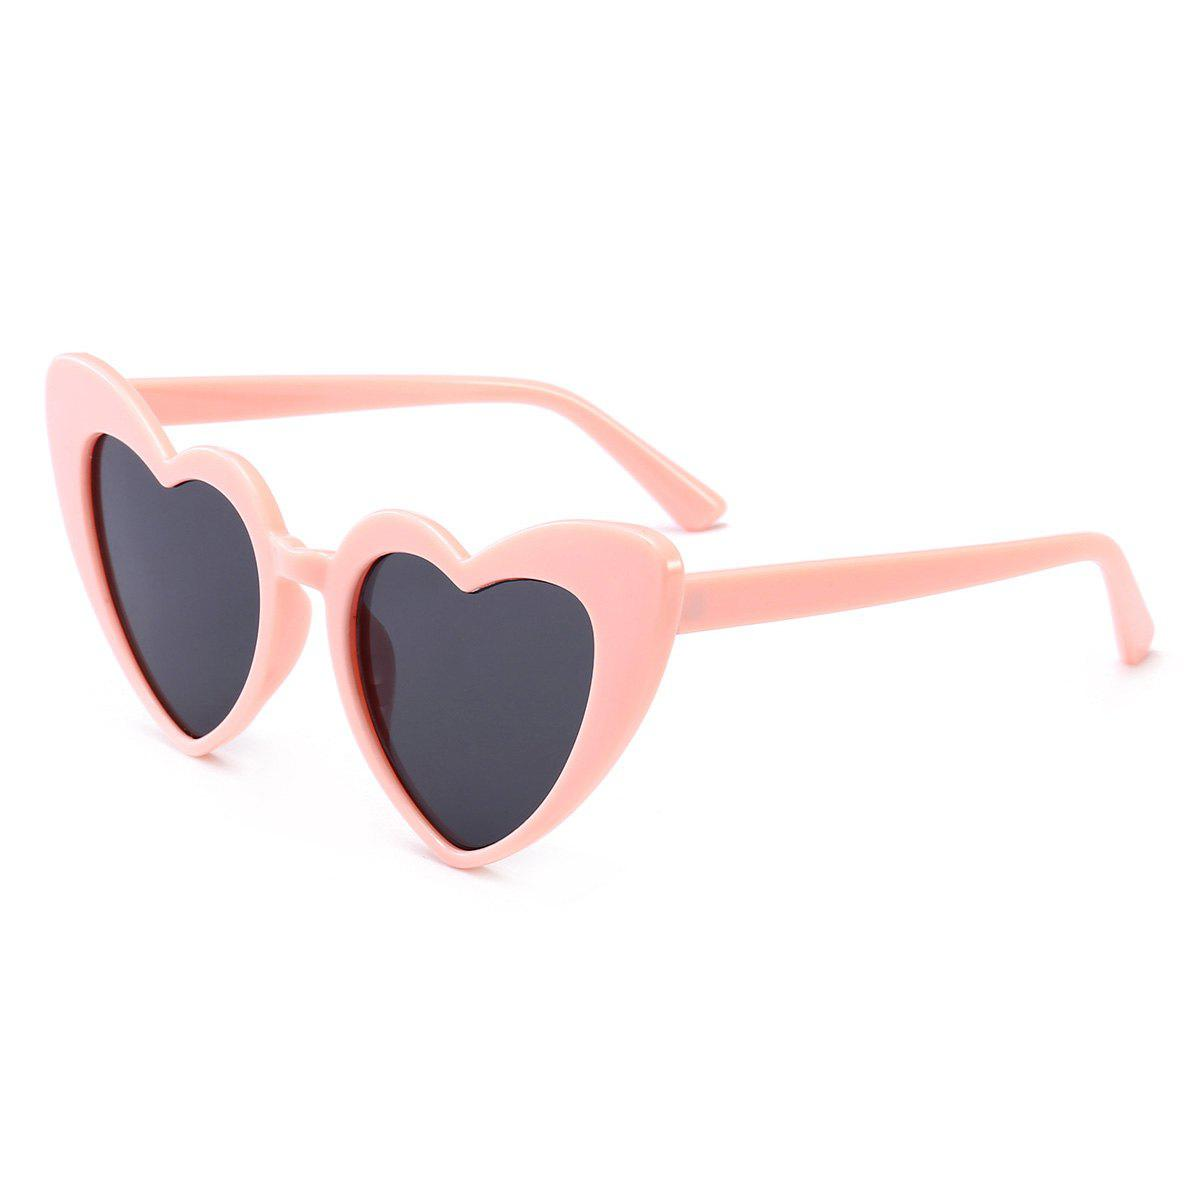 Full Frame Heart Shape Sunglasses